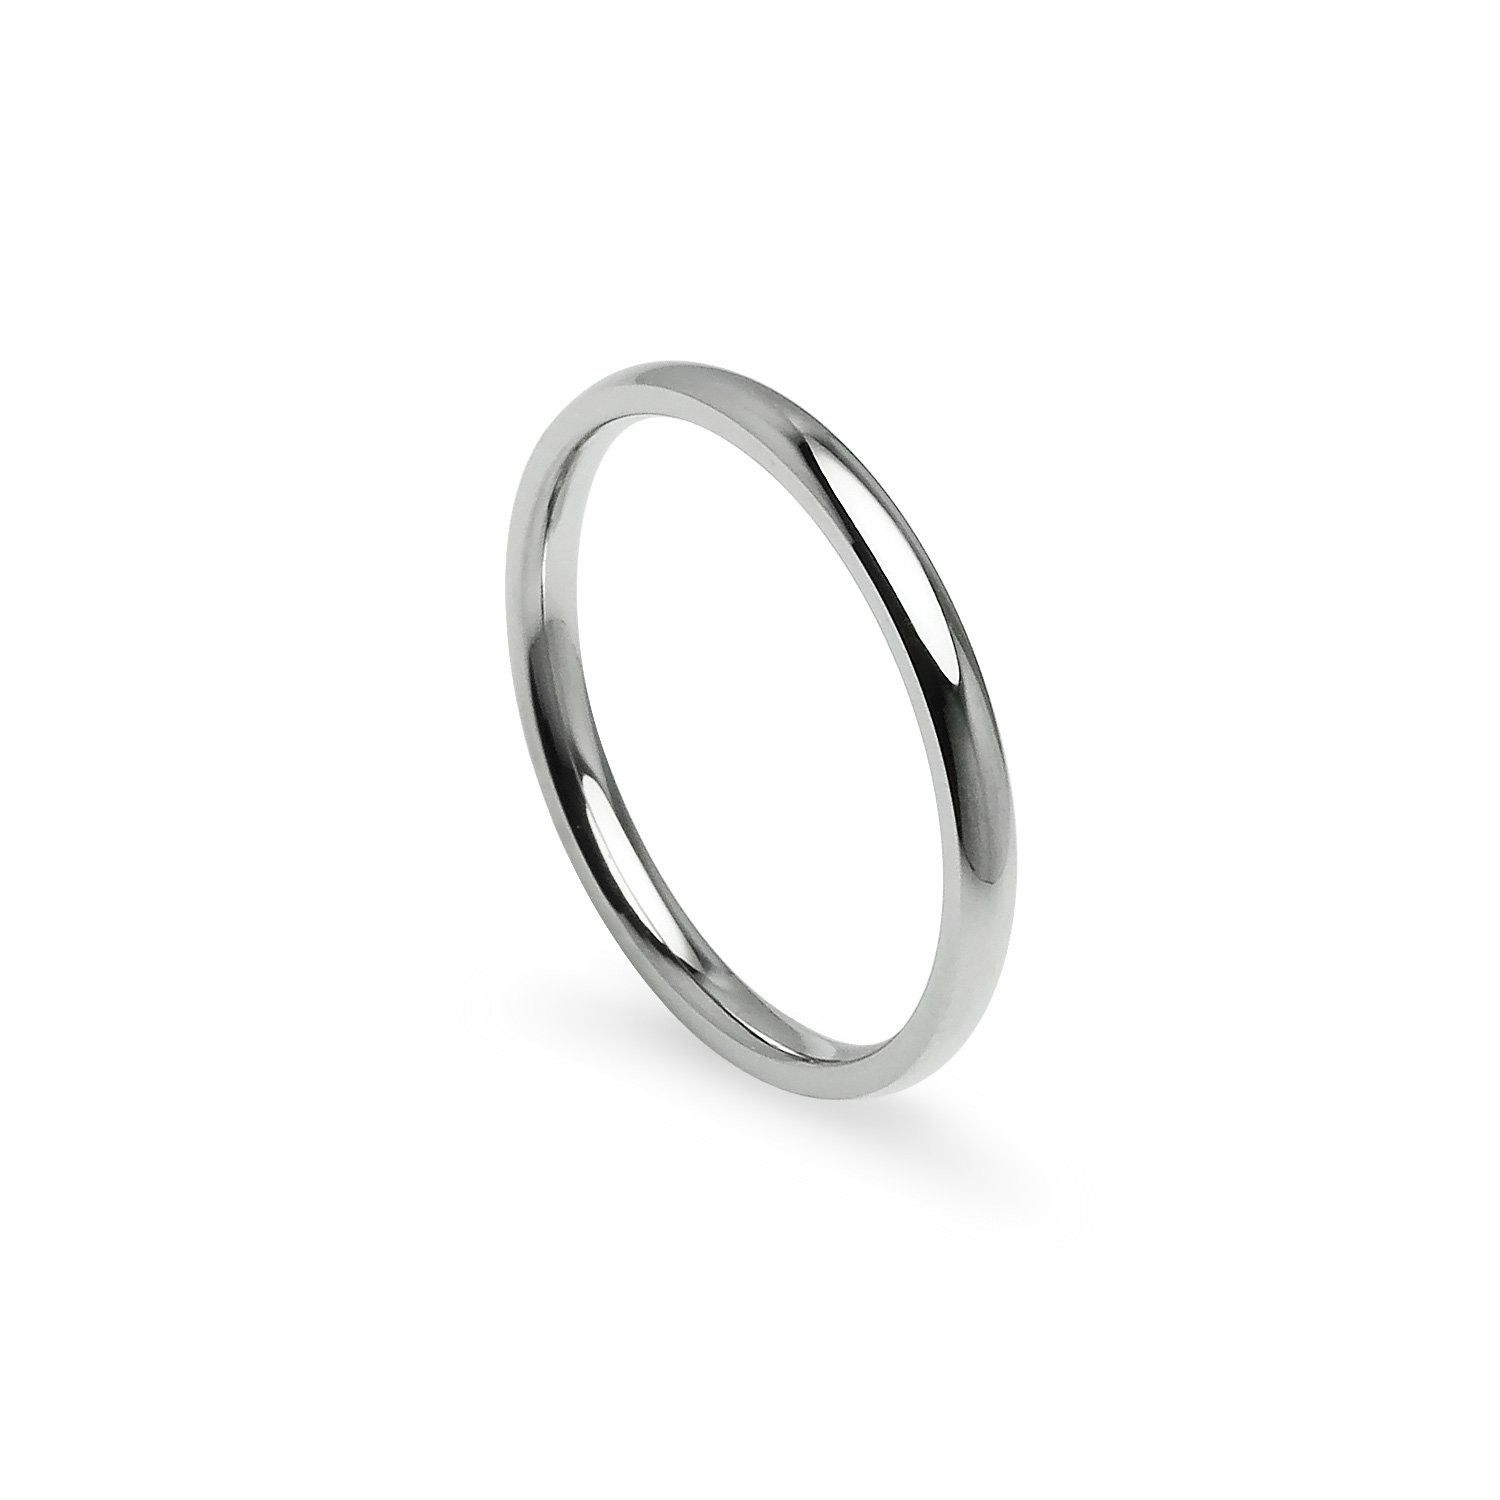 14k White Gold Comfort Fit Plain Wedding Band Ring 2mm Size 7